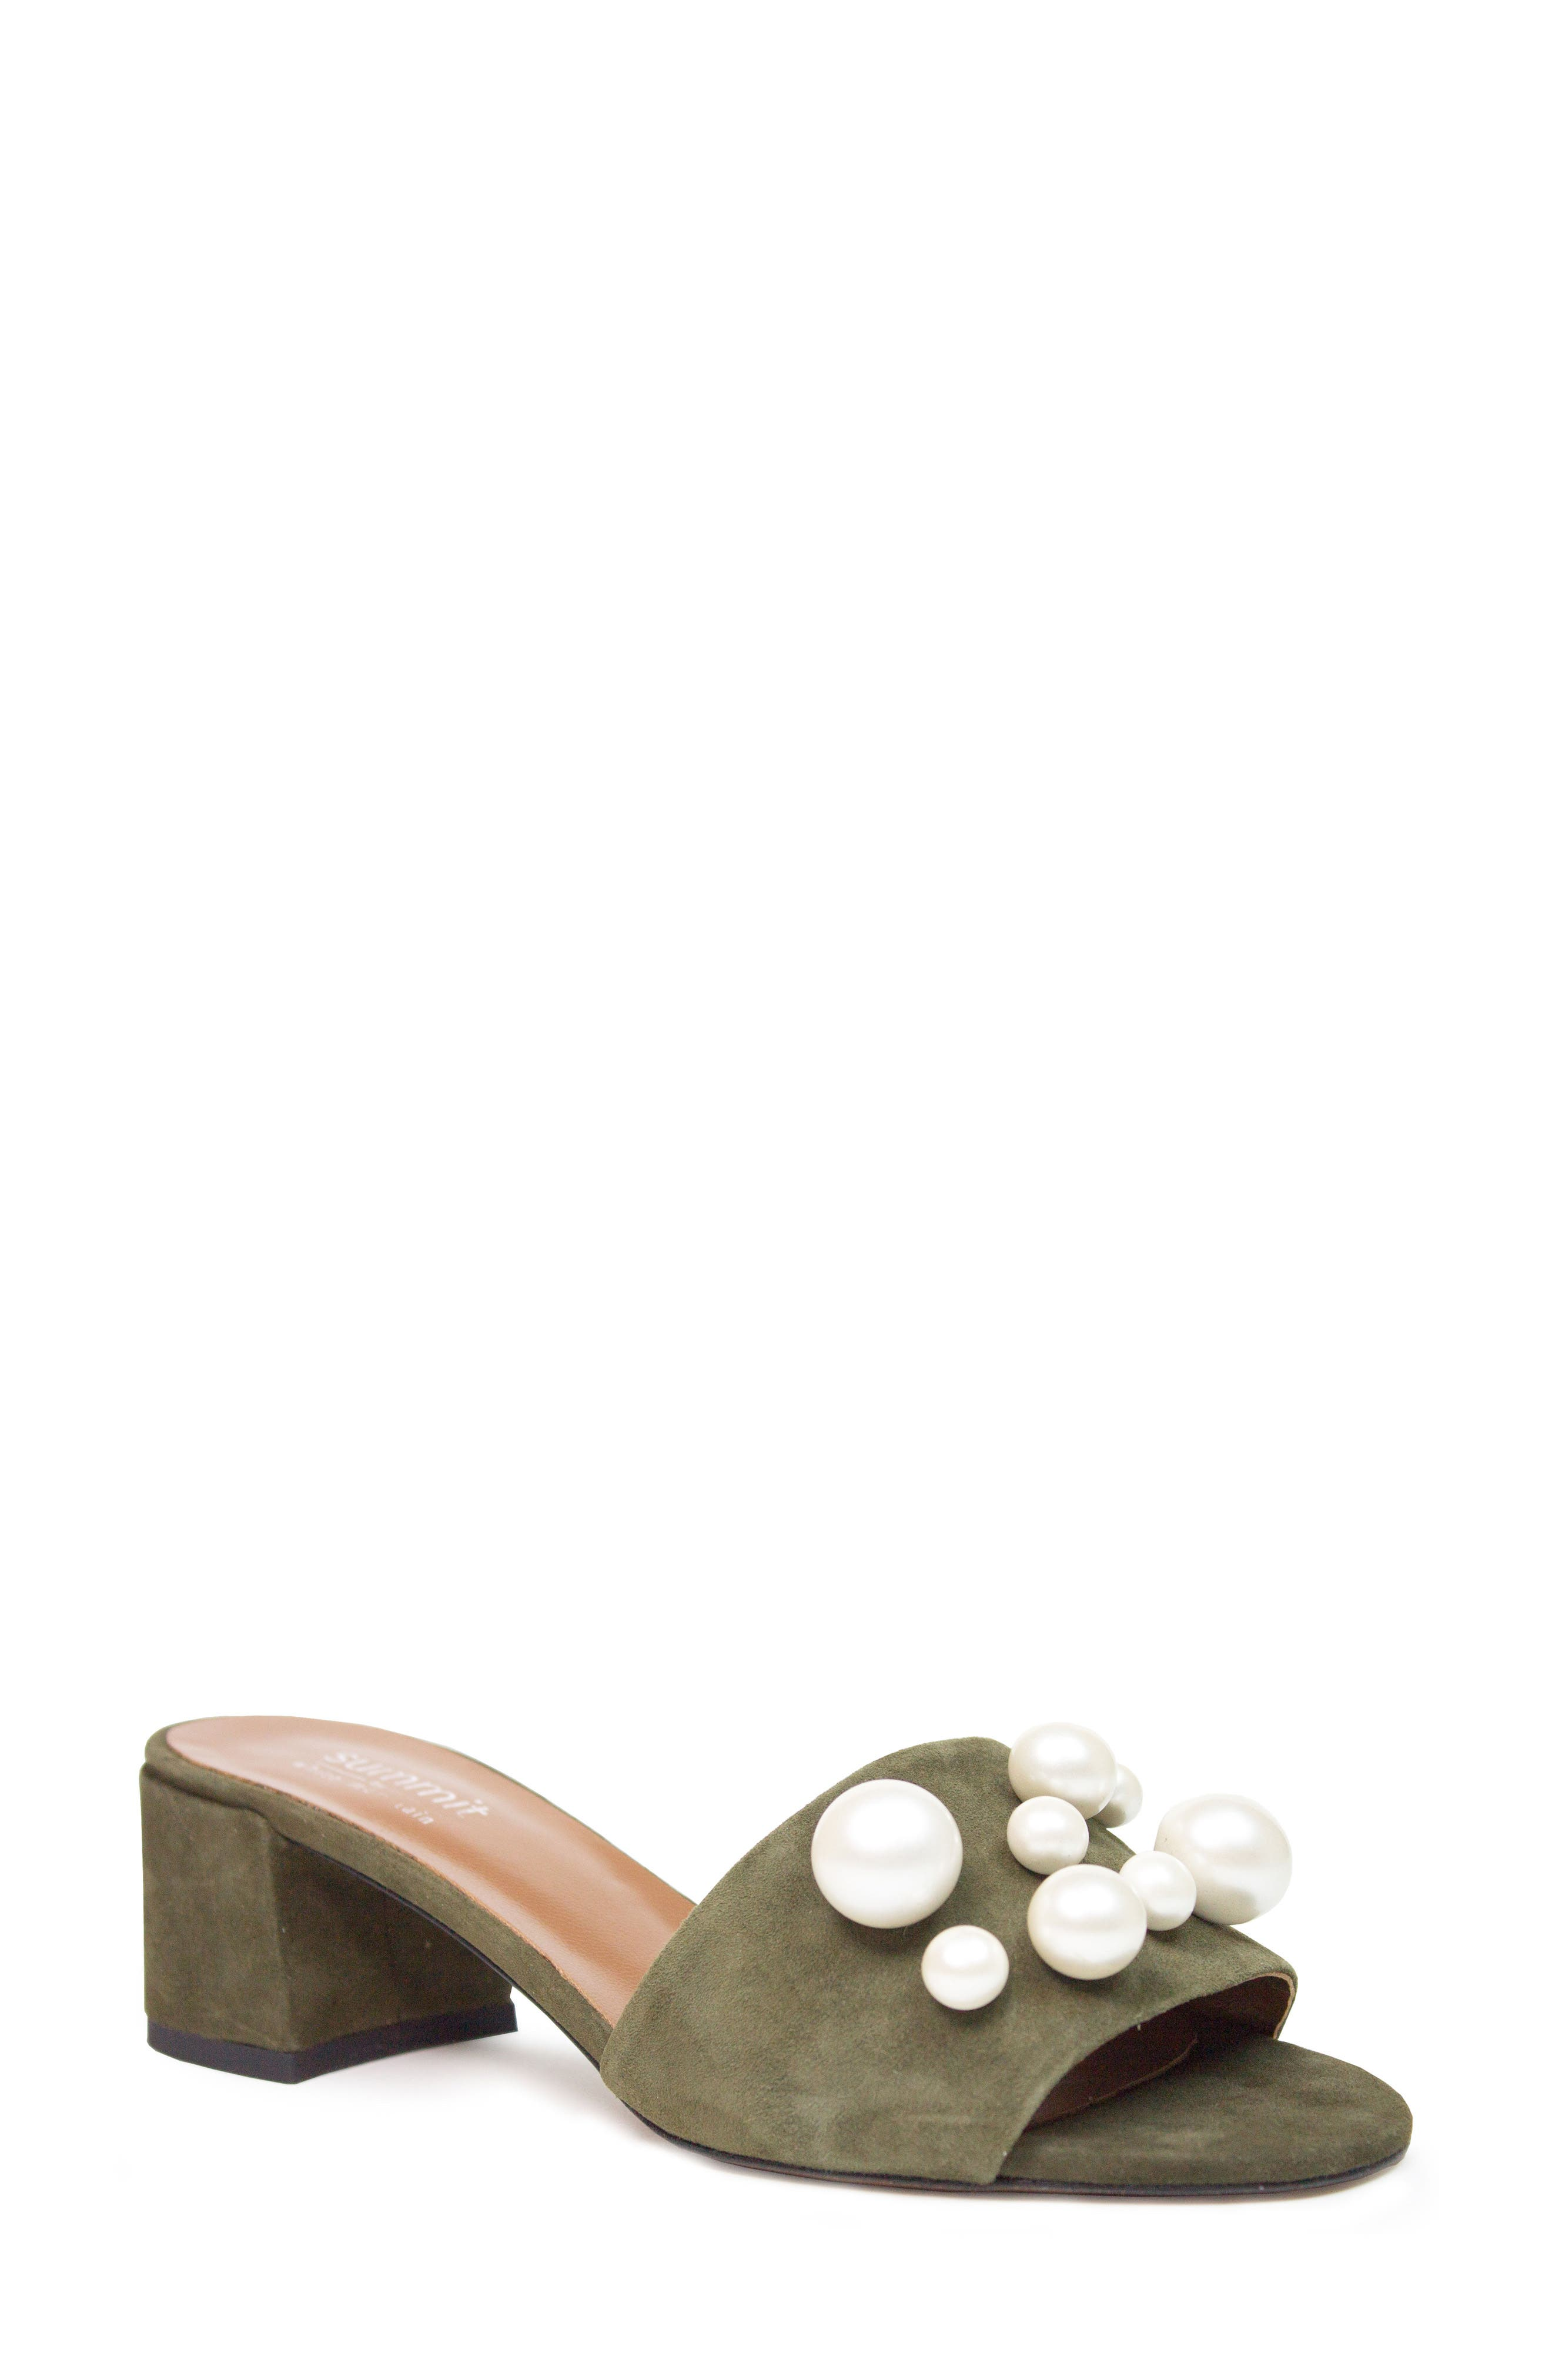 Ariella Beaded Slide Mule,                             Main thumbnail 1, color,                             Olive Suede